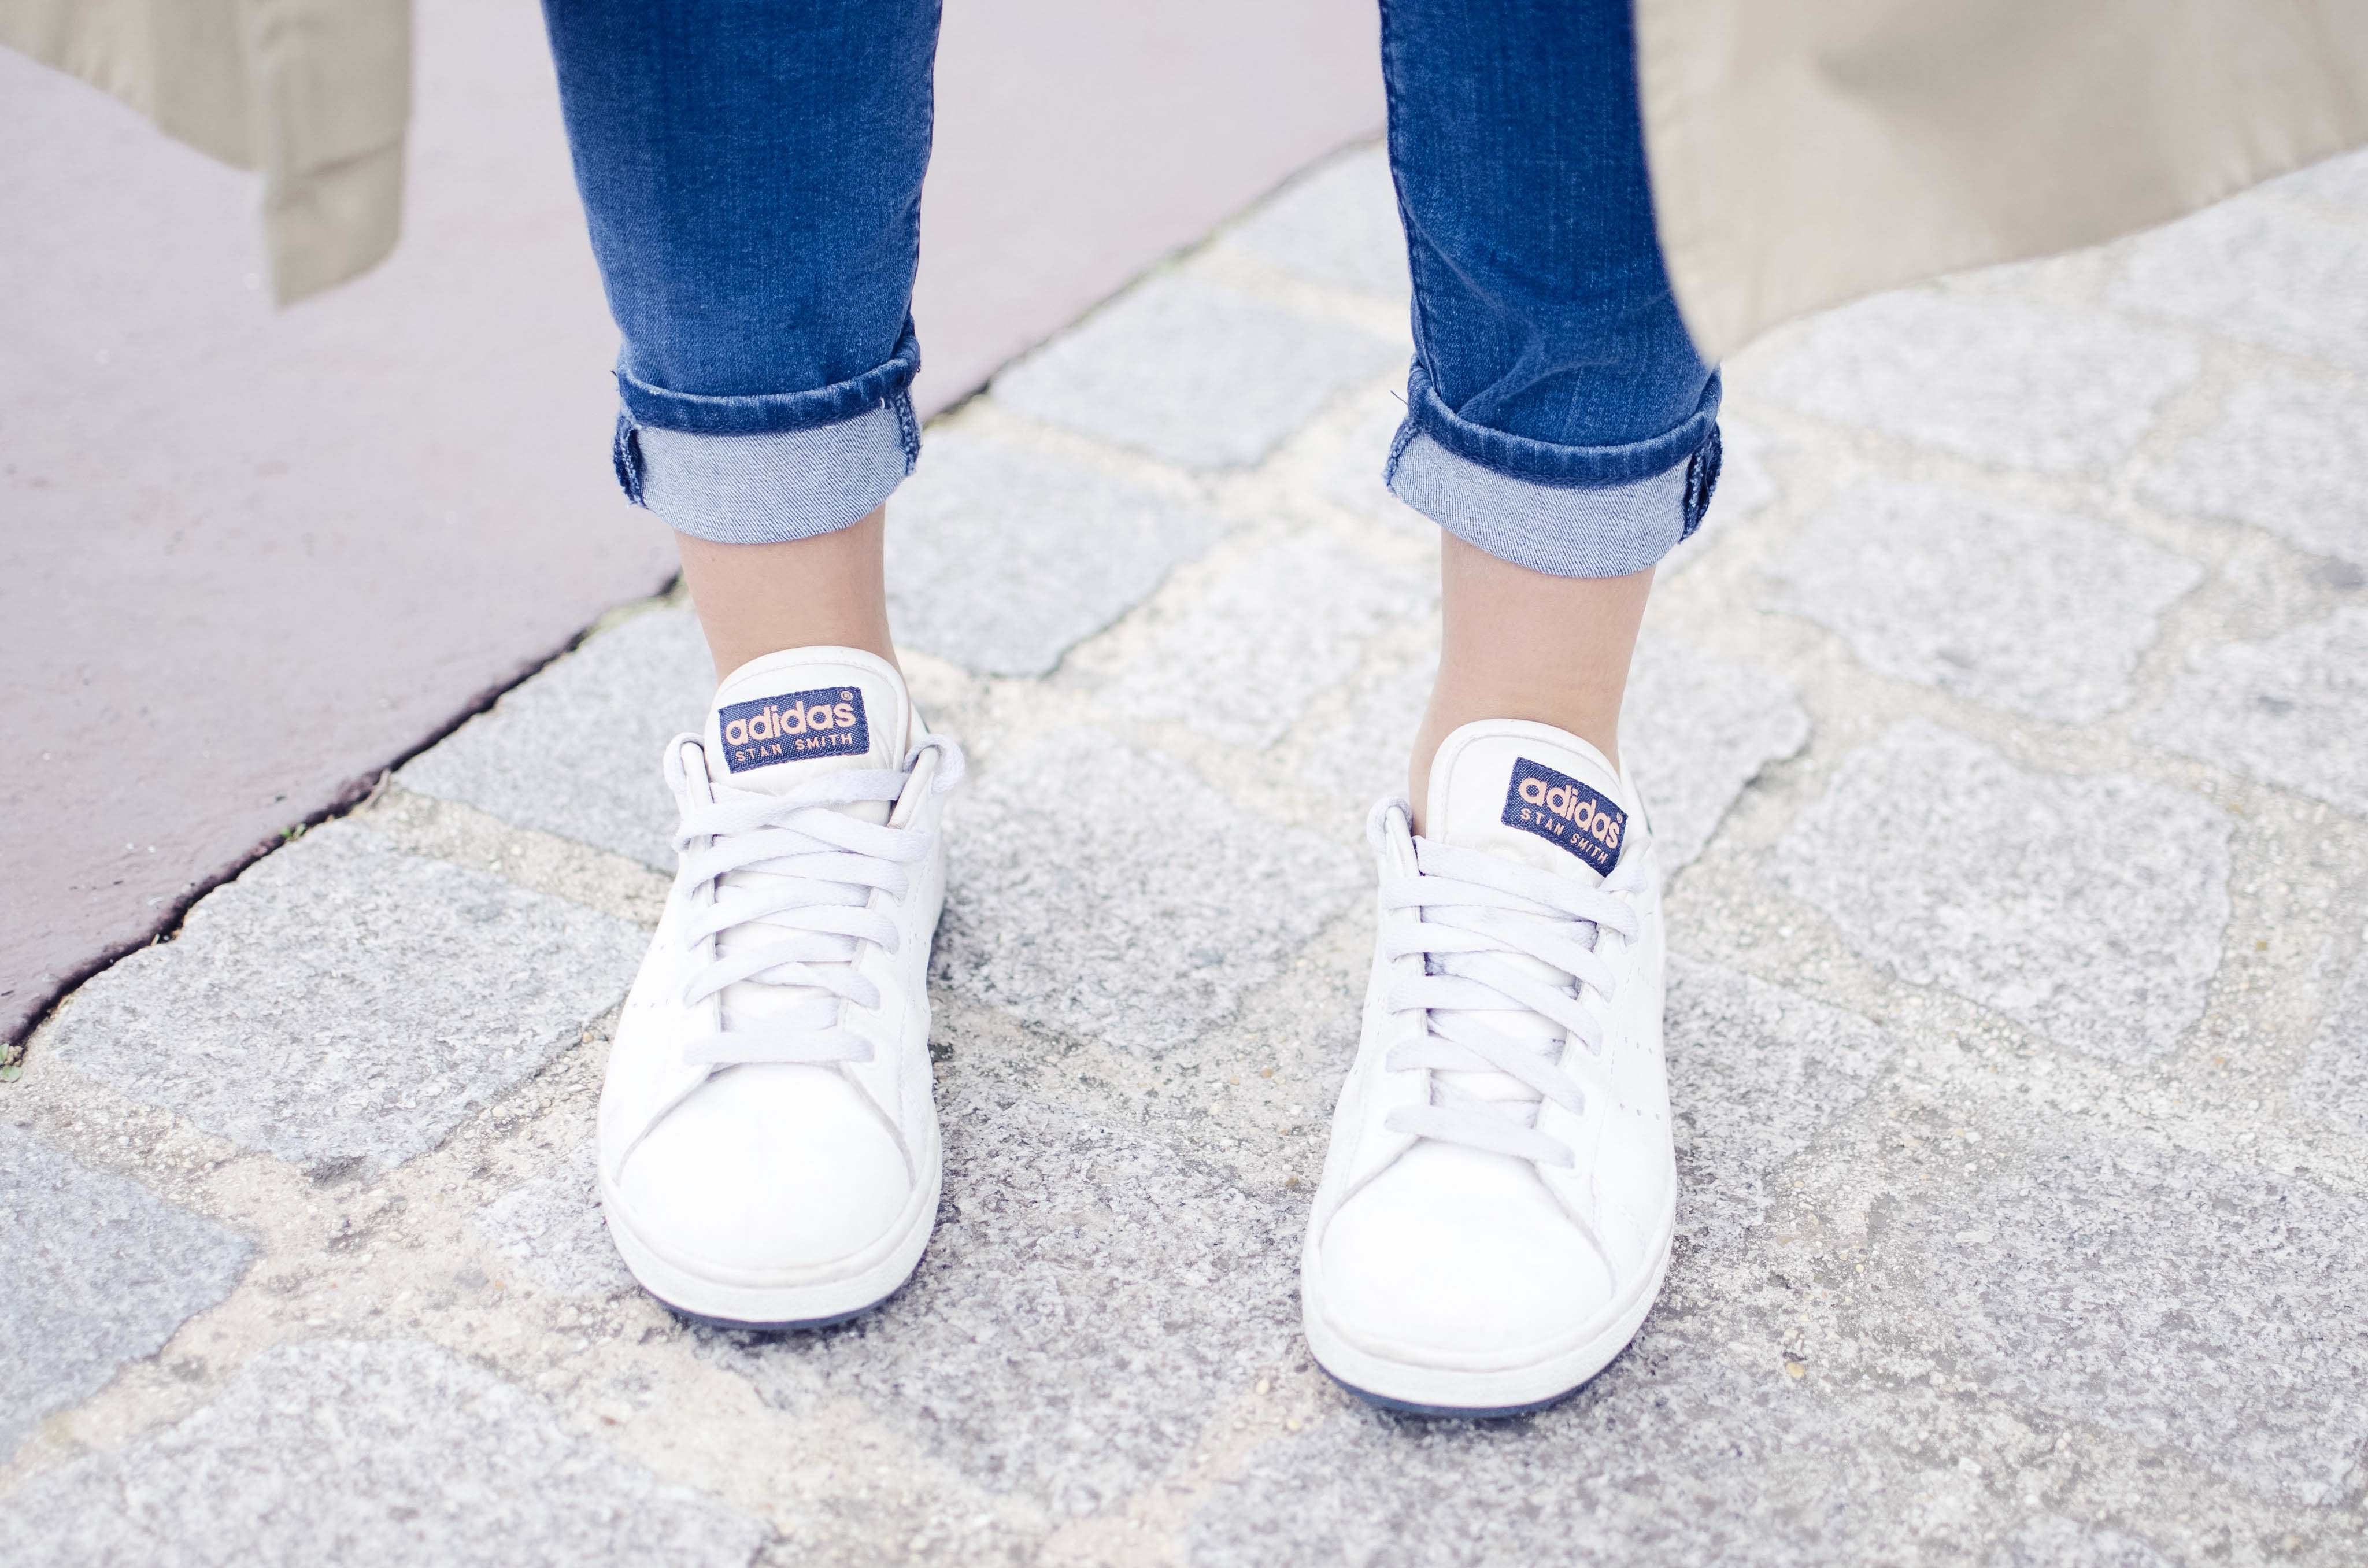 ootd stan smith pied foot feet